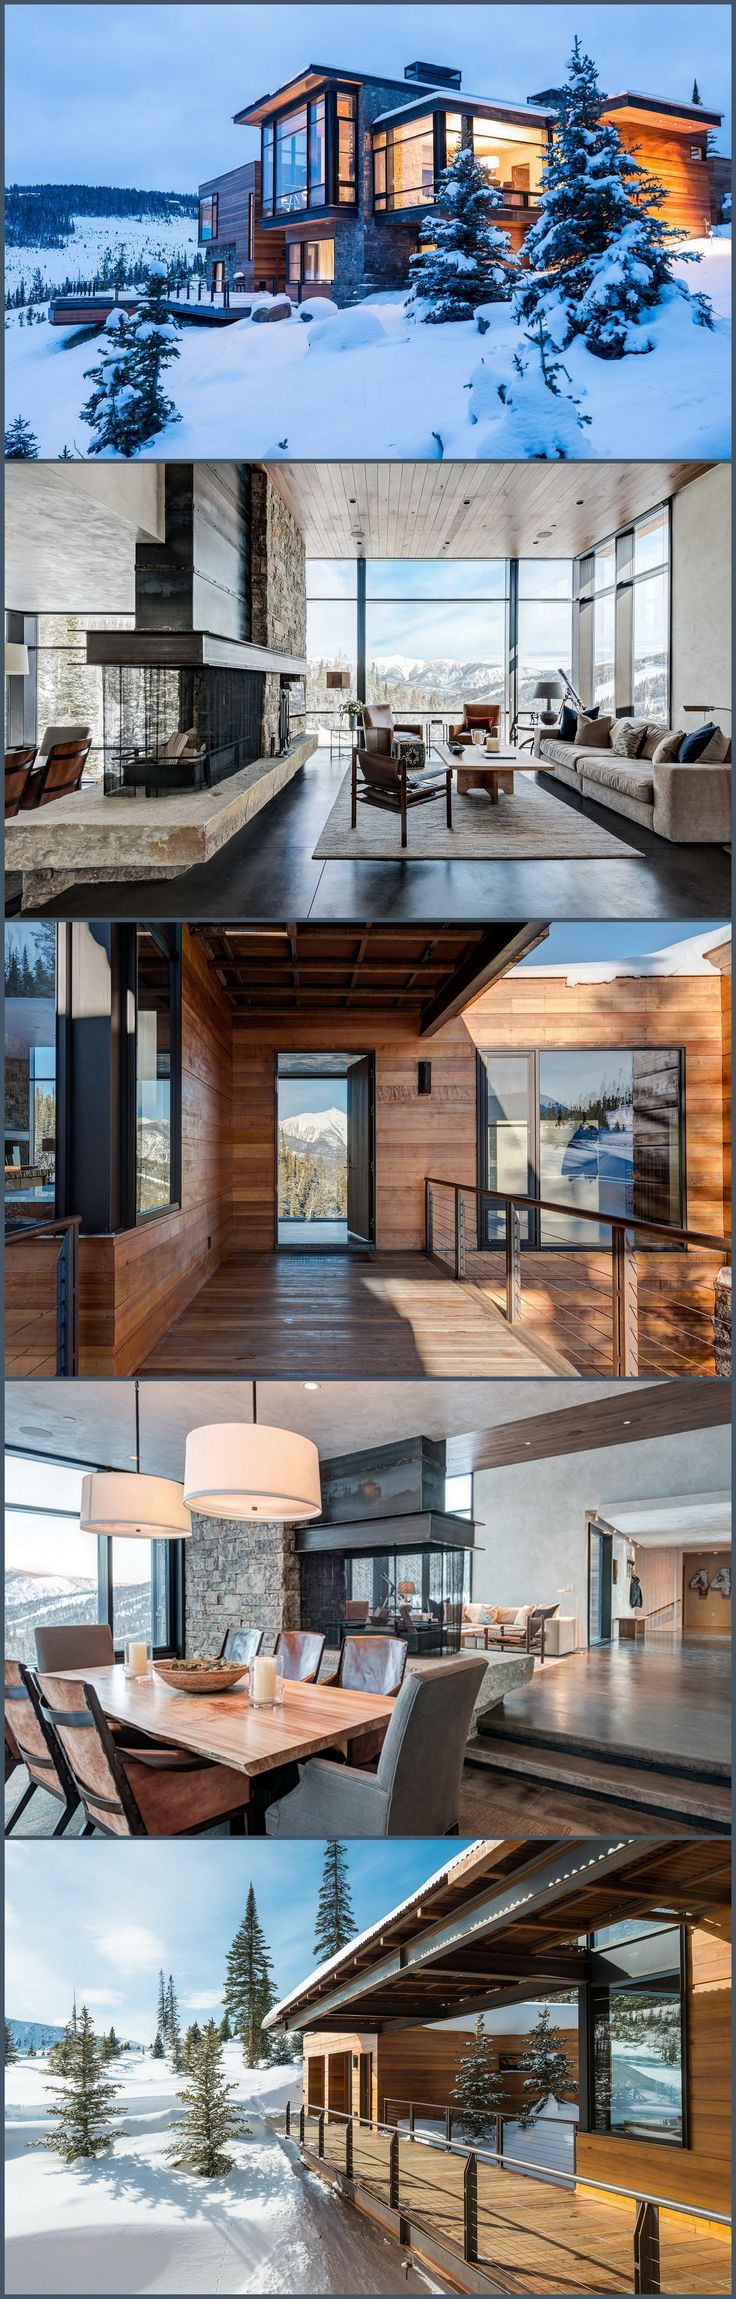 best houses images on pinterest future house modern houses